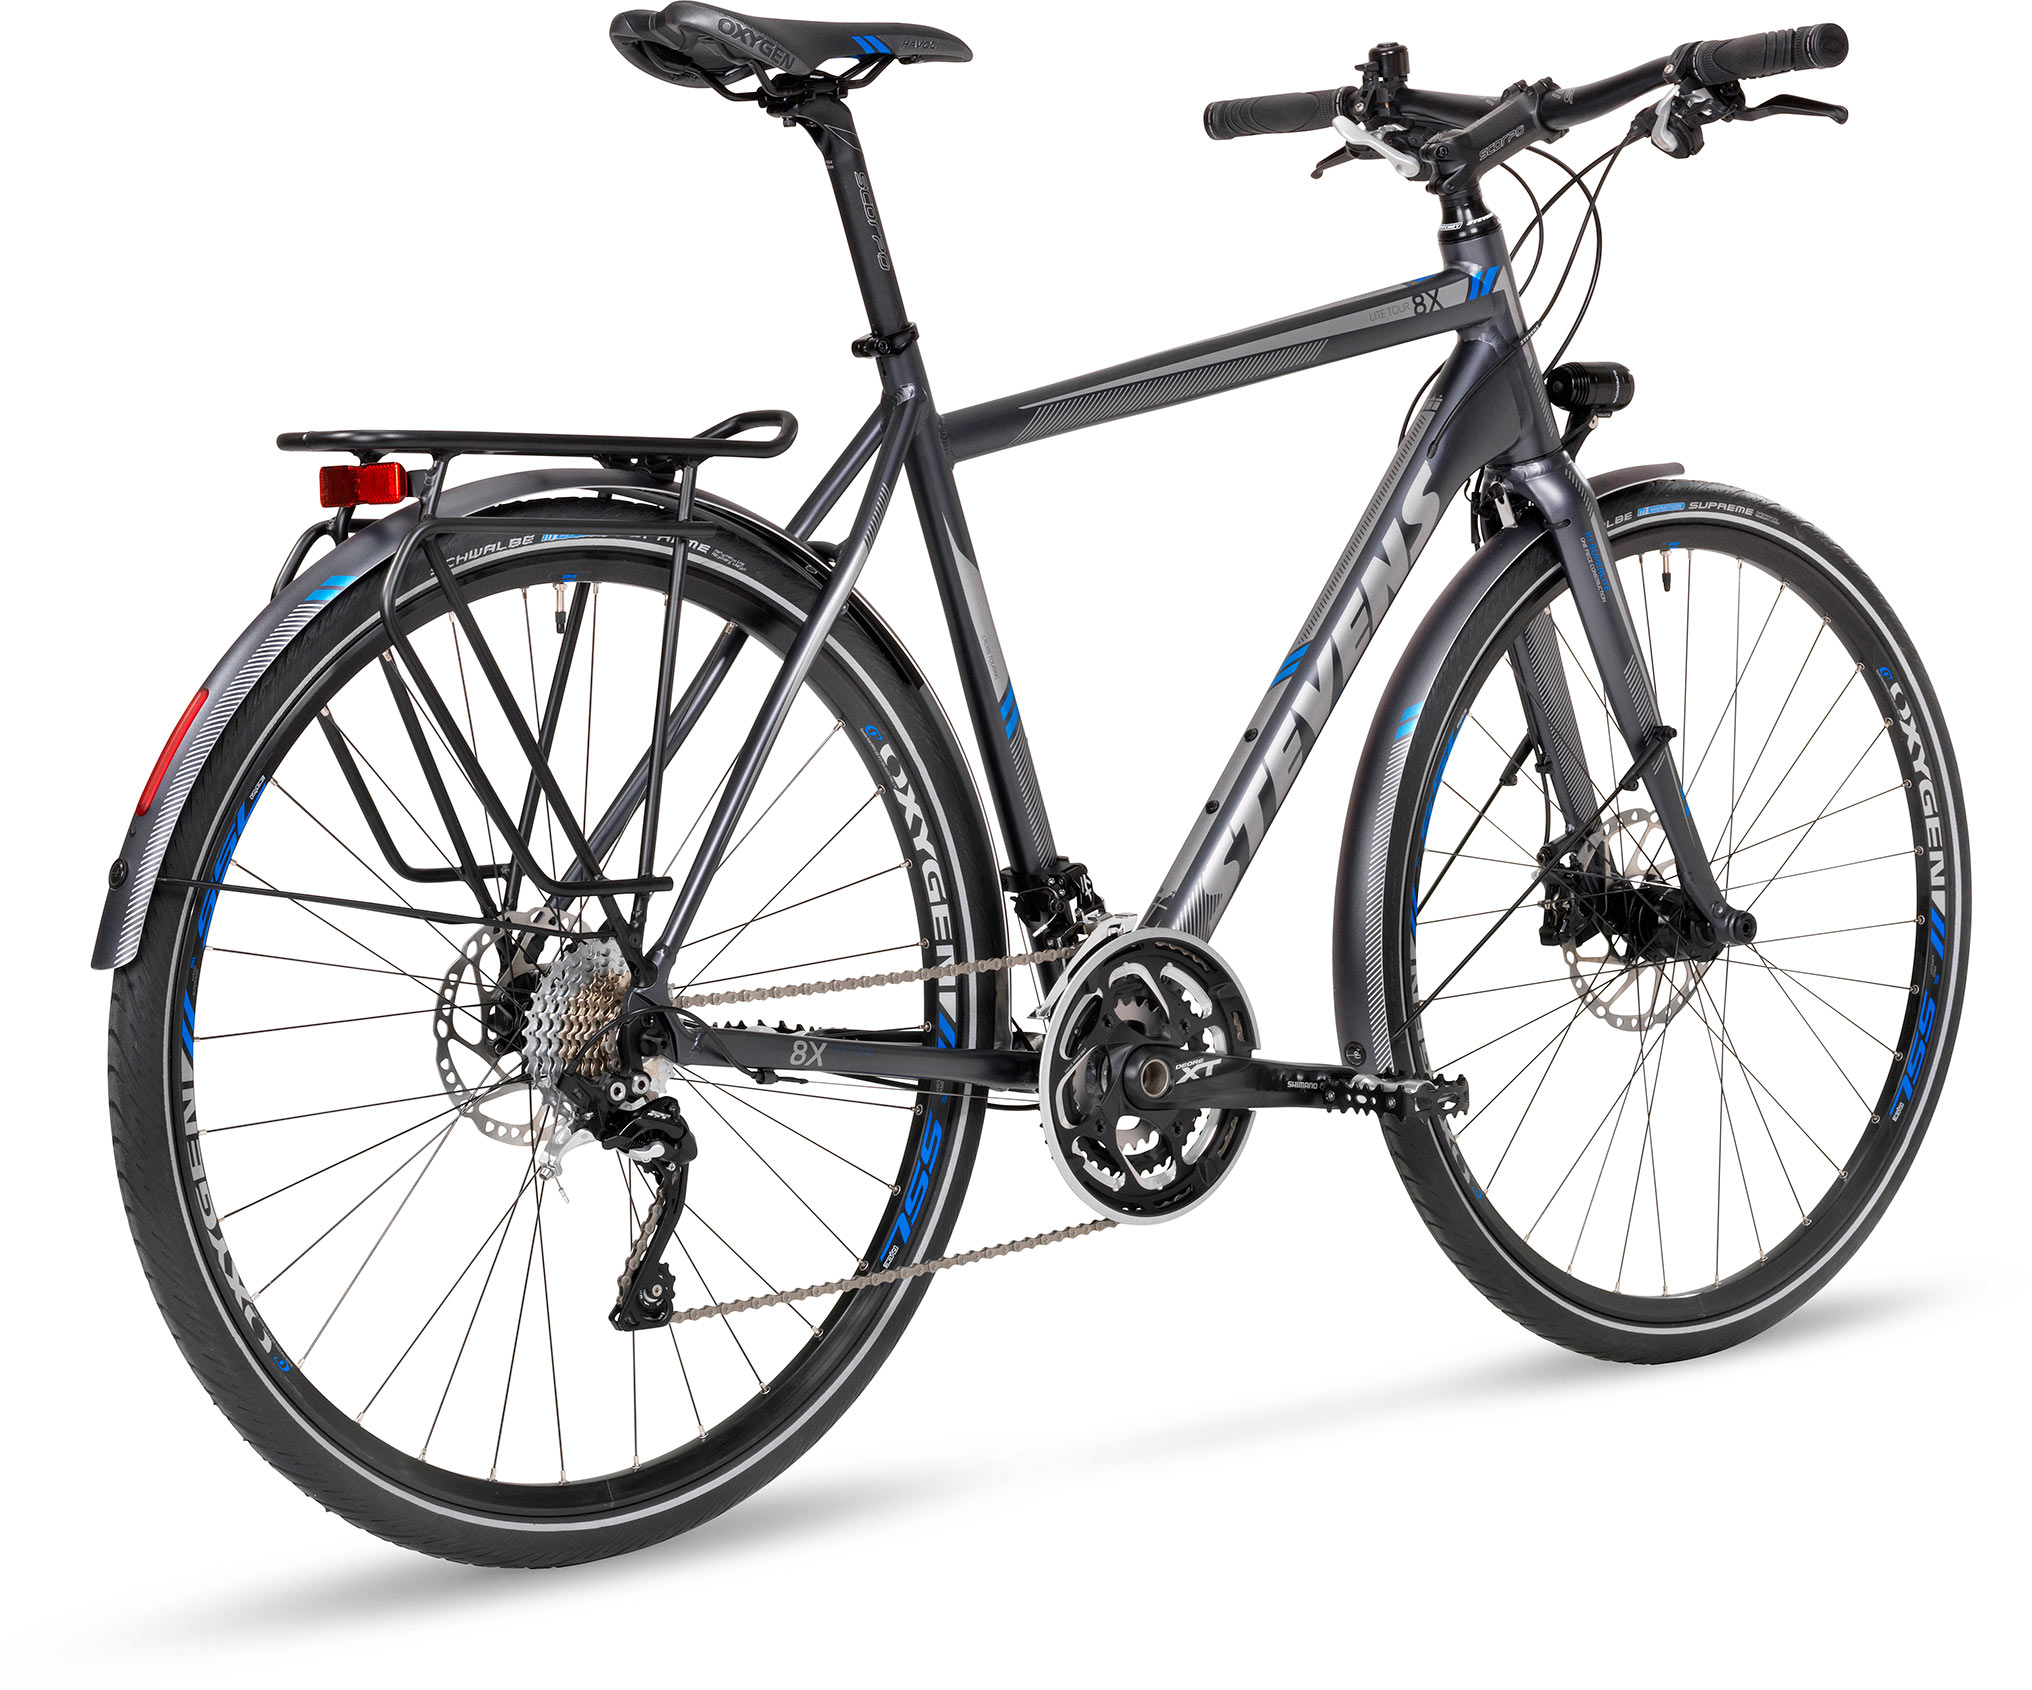 Steel Touring Bike With Disc Brakes Best Brake 2017